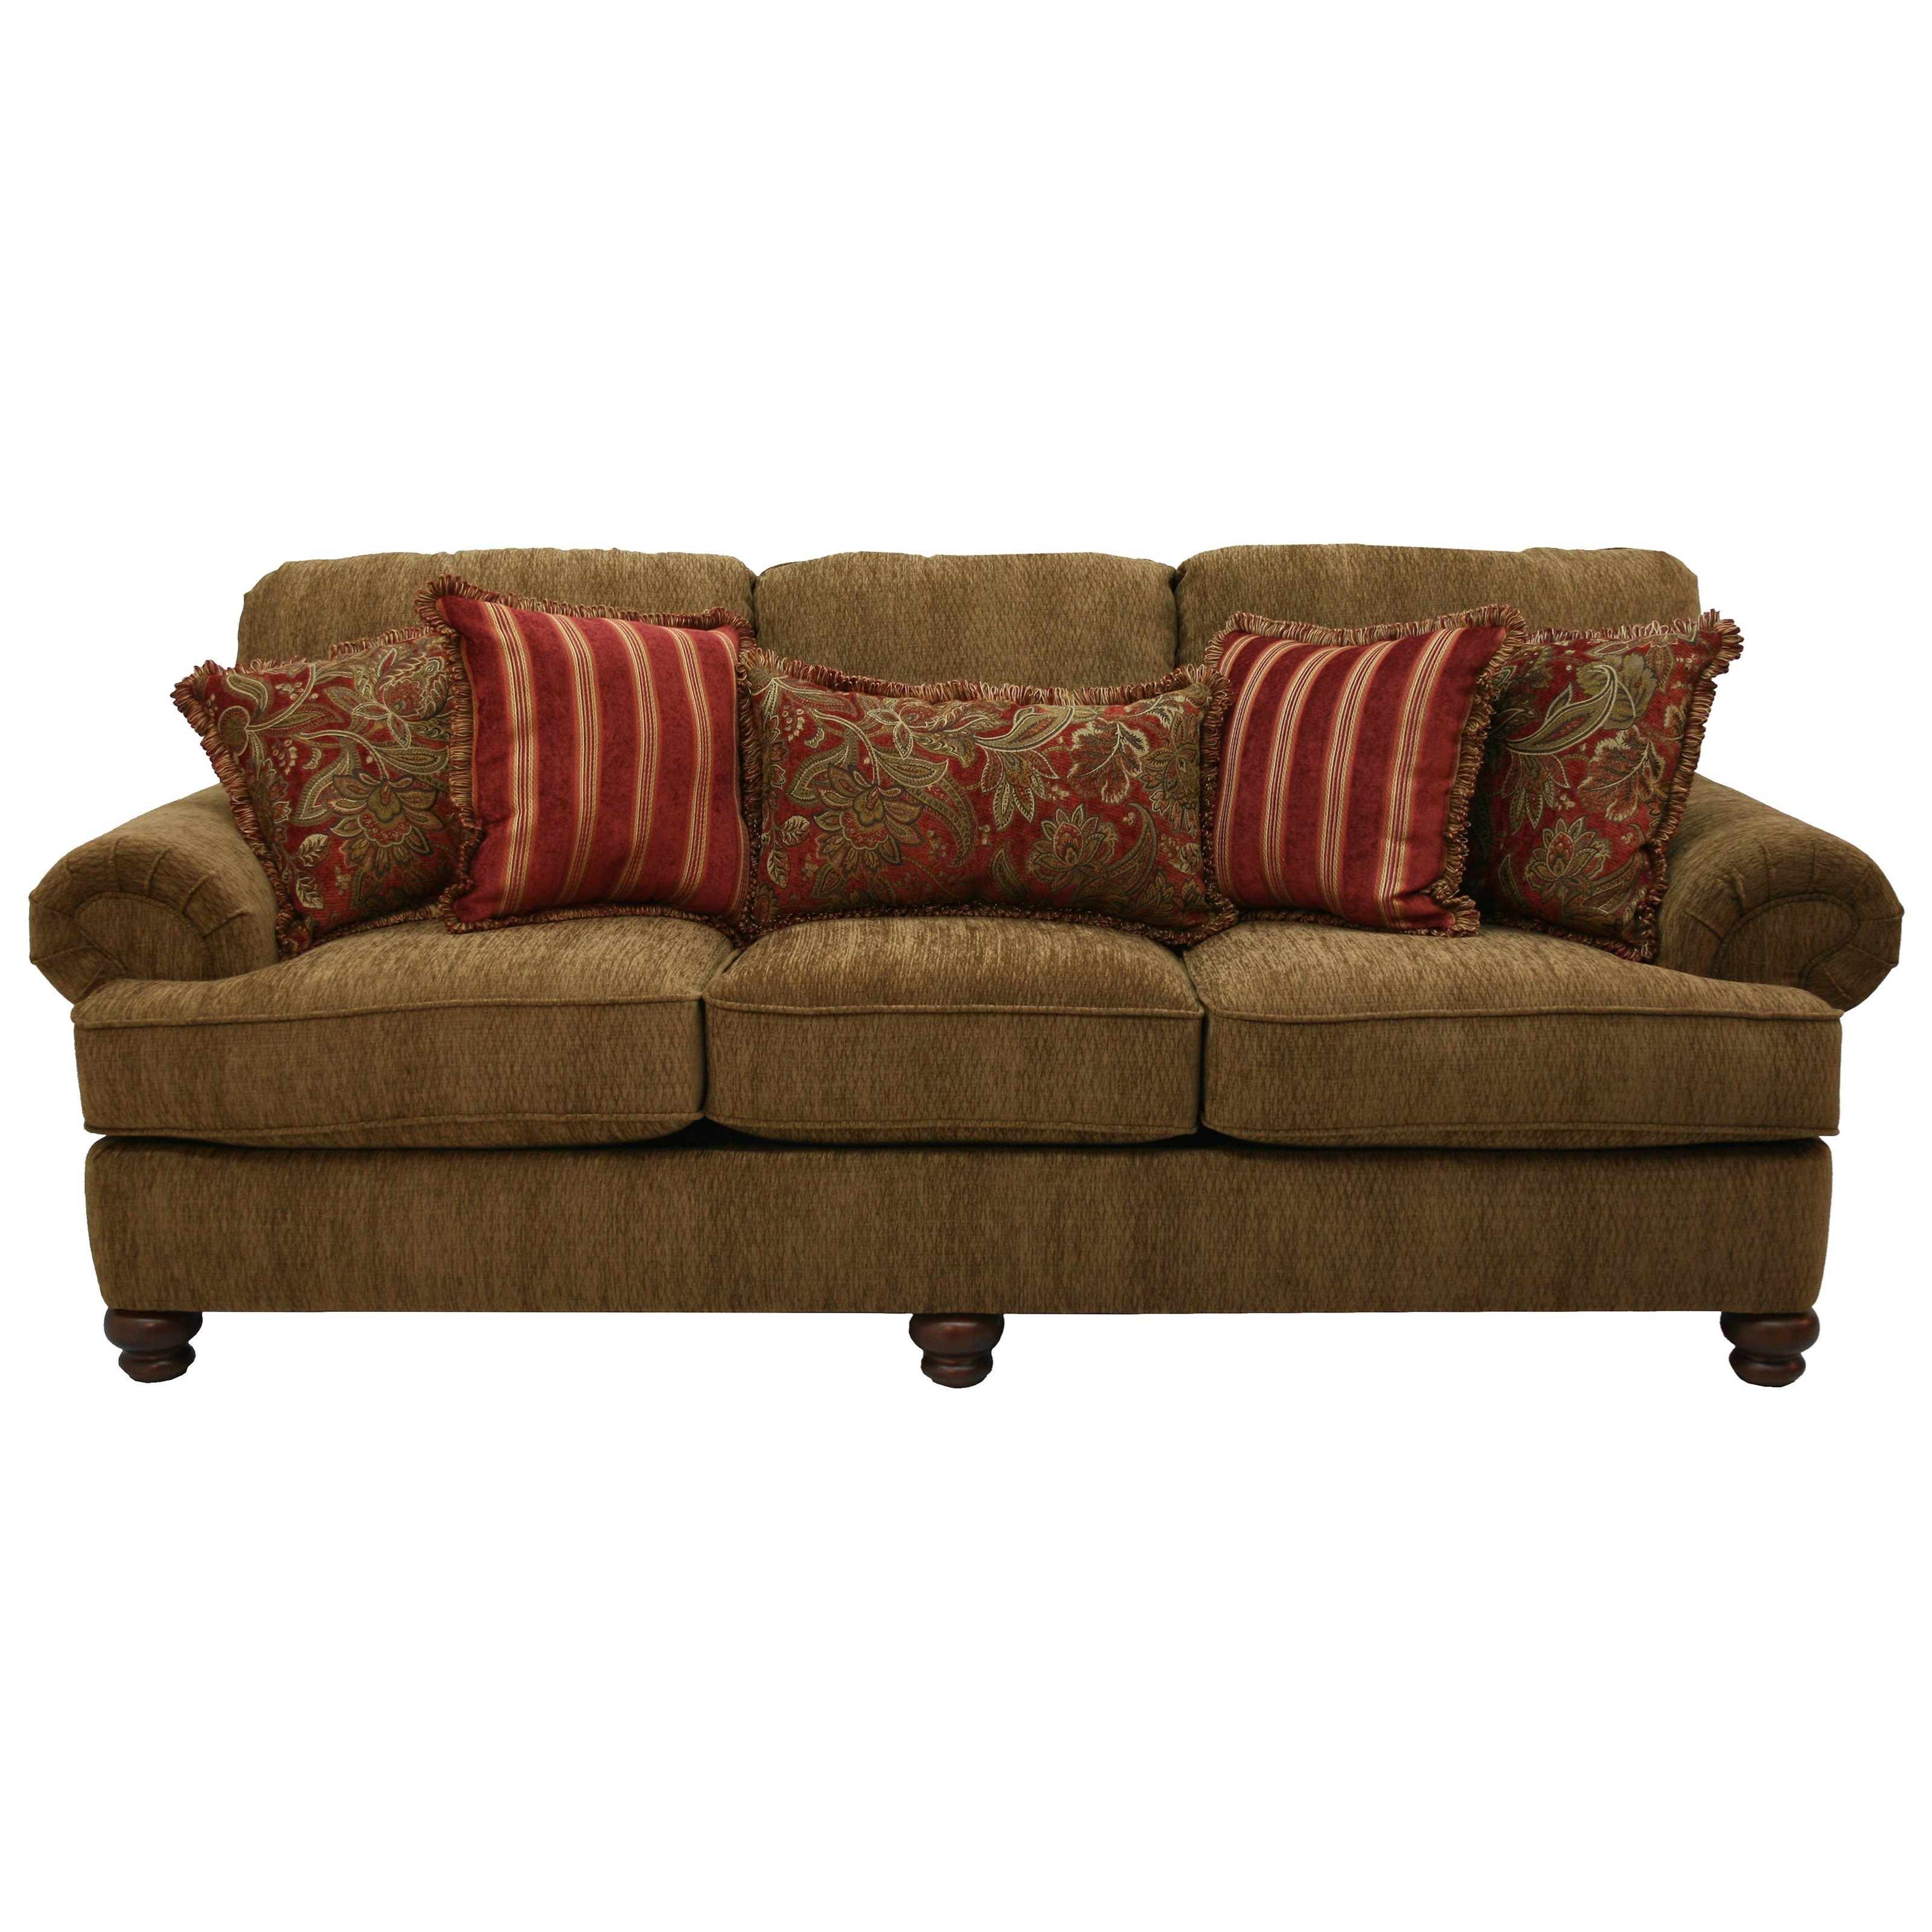 Sofa with Rolled Arms and Decorative Pillows by Jackson Furniture